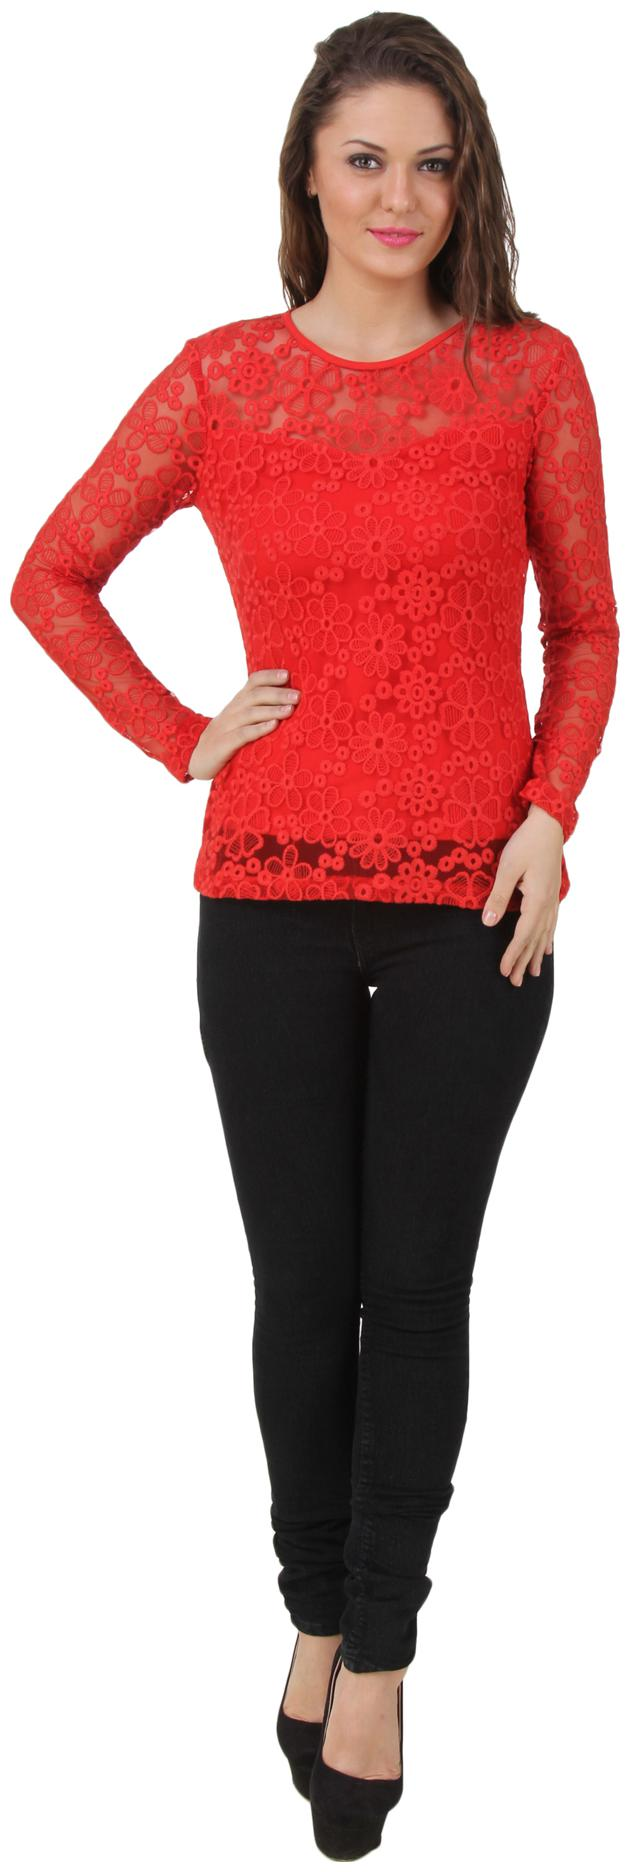 Texco Full Sleeve Floral Pattern Sheer Red Lace Top